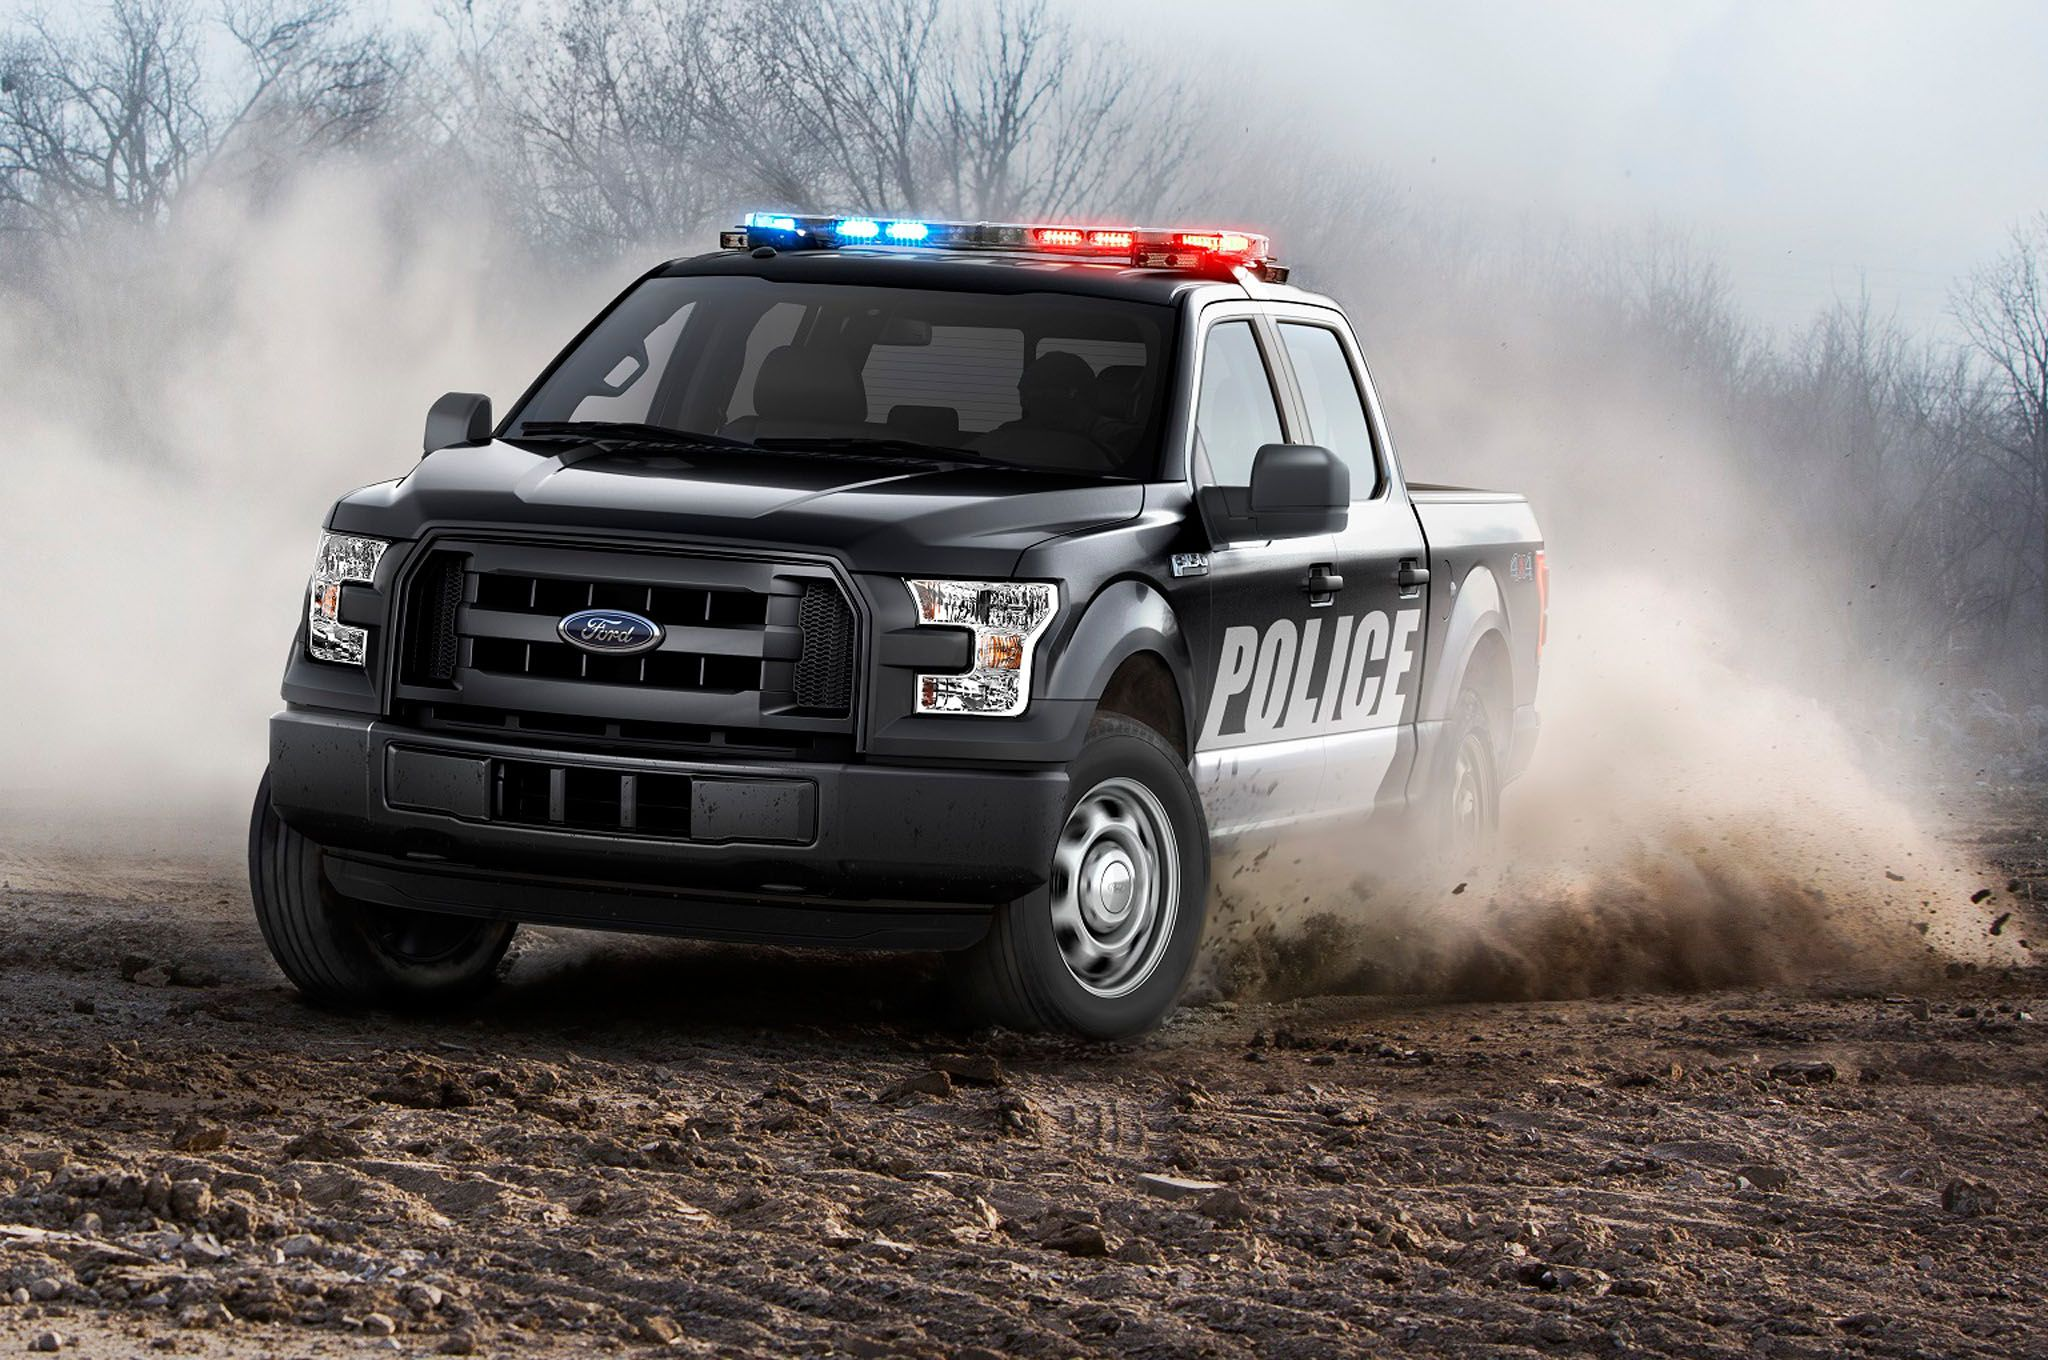 Ford F Police Background Wallpaper Hd Car Wallpapers Police Truck Police Cars Ford Police